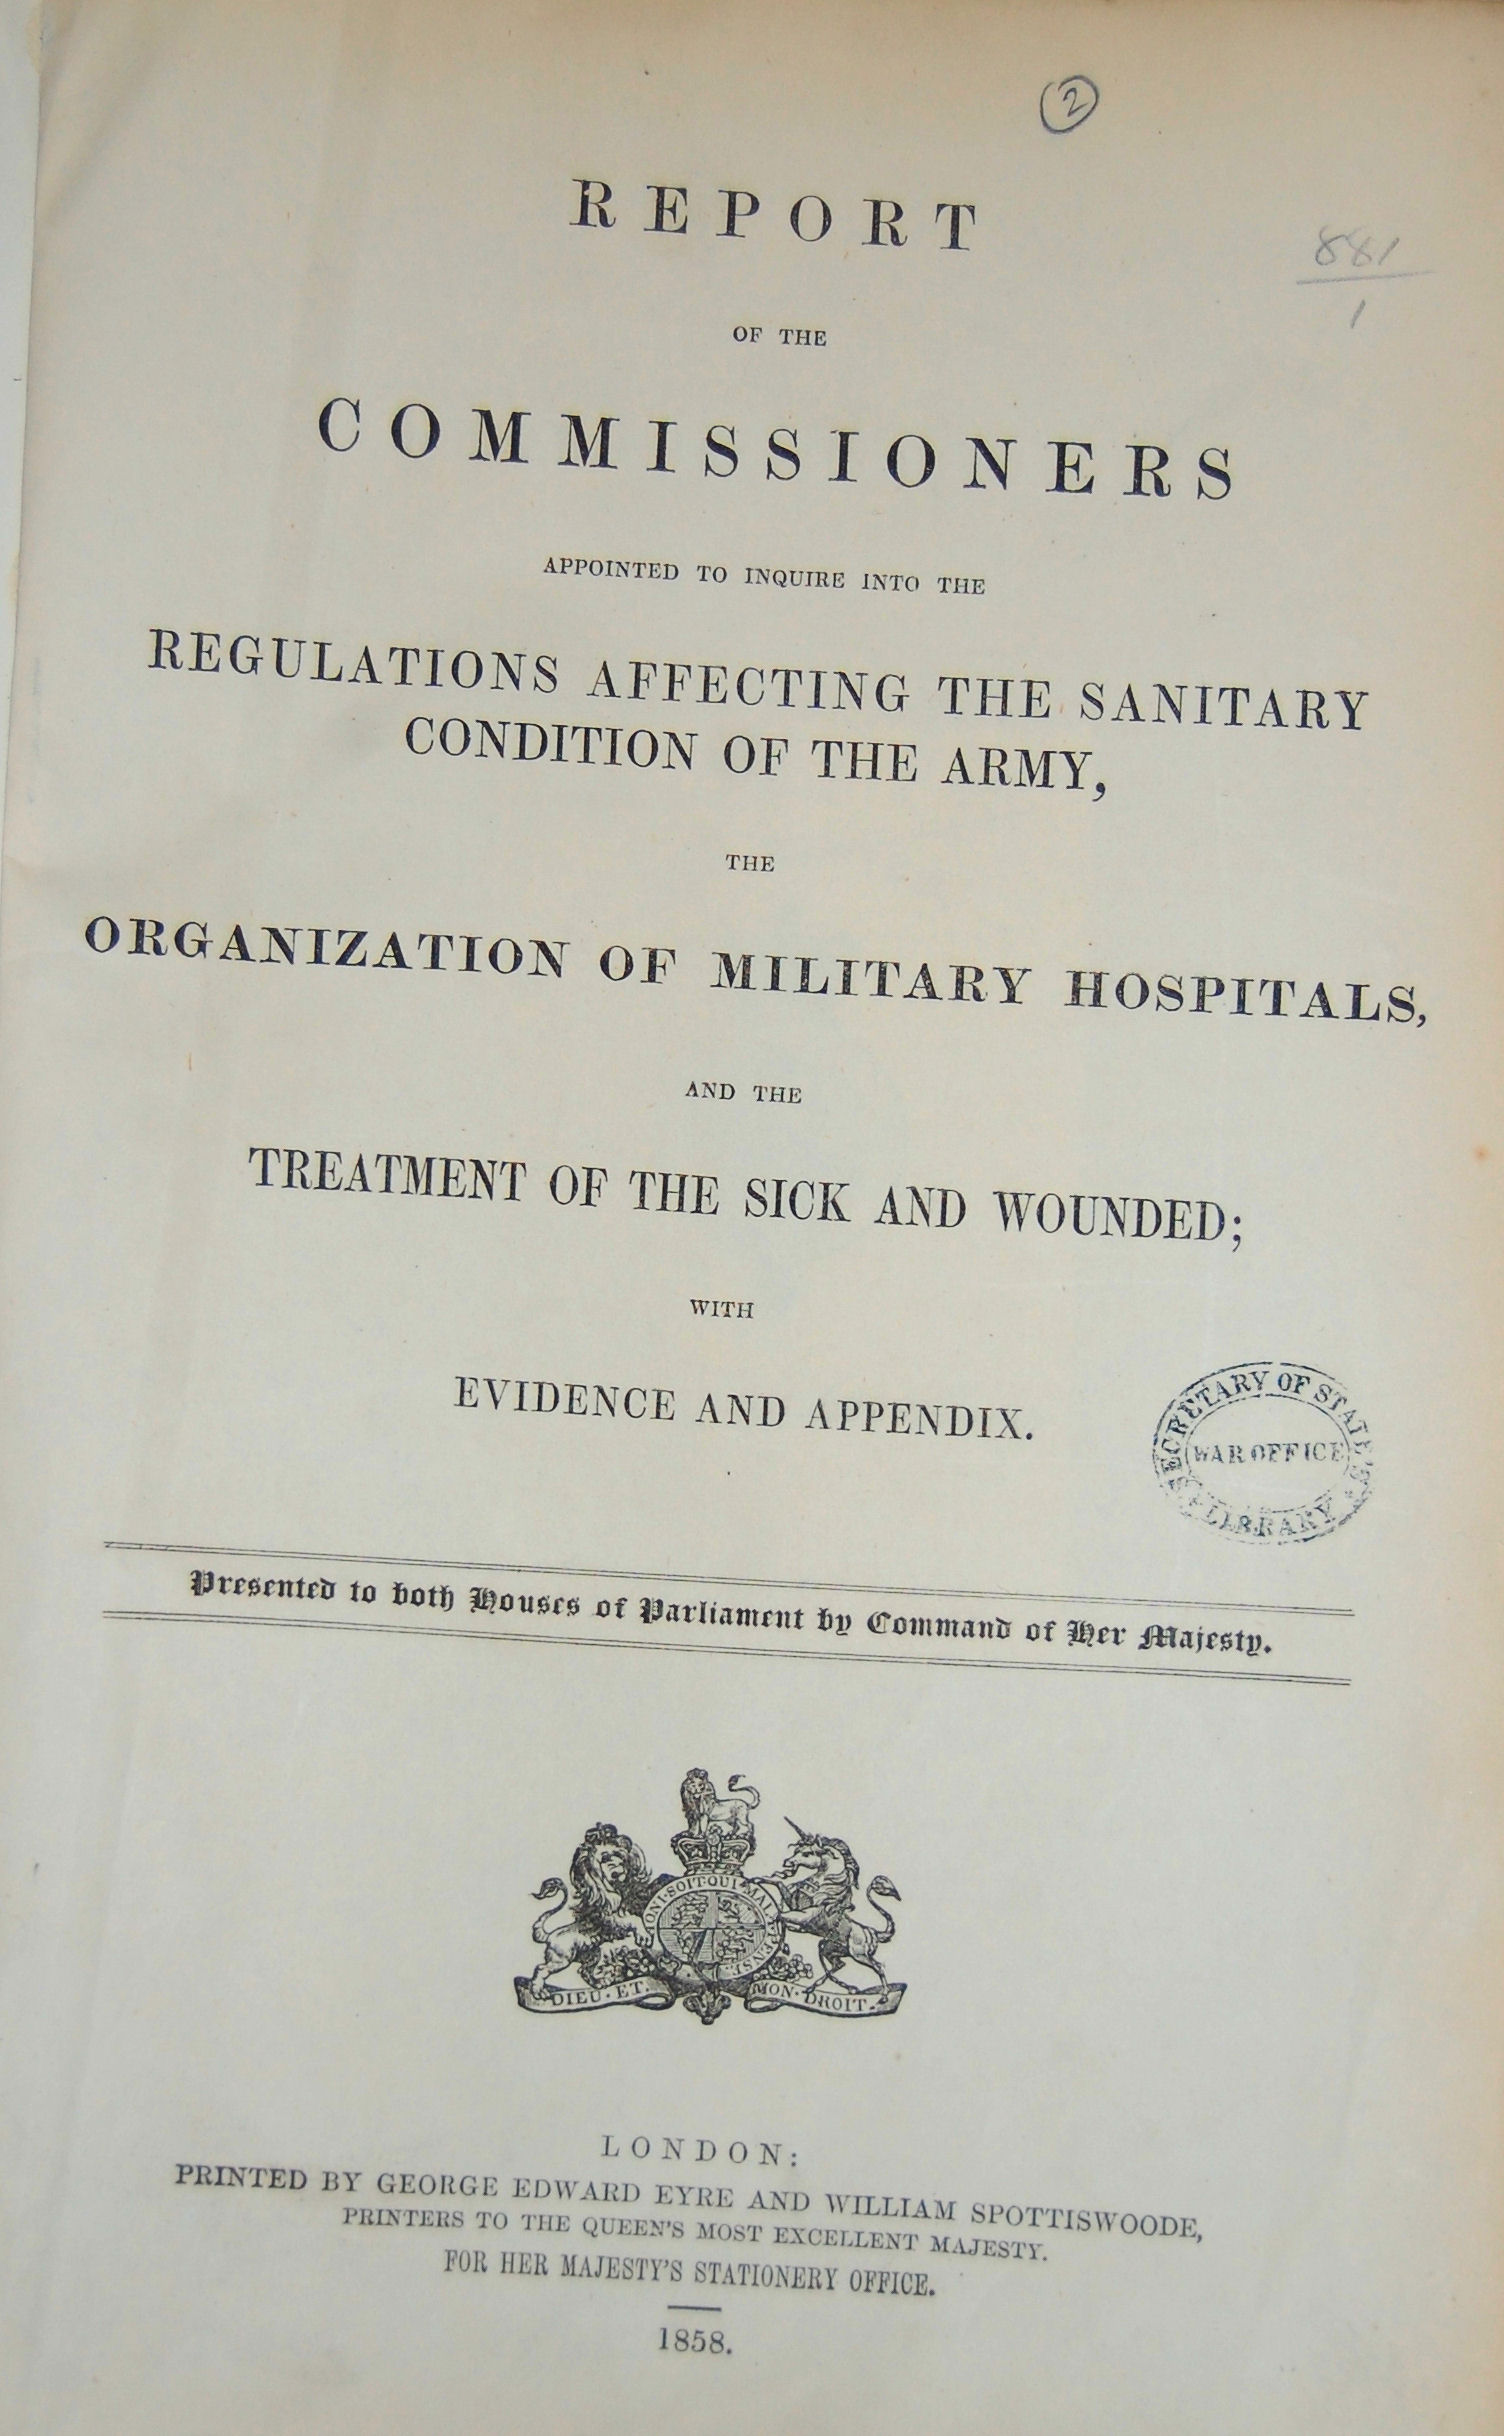 army medical officers and the malta garrison 1800 1898